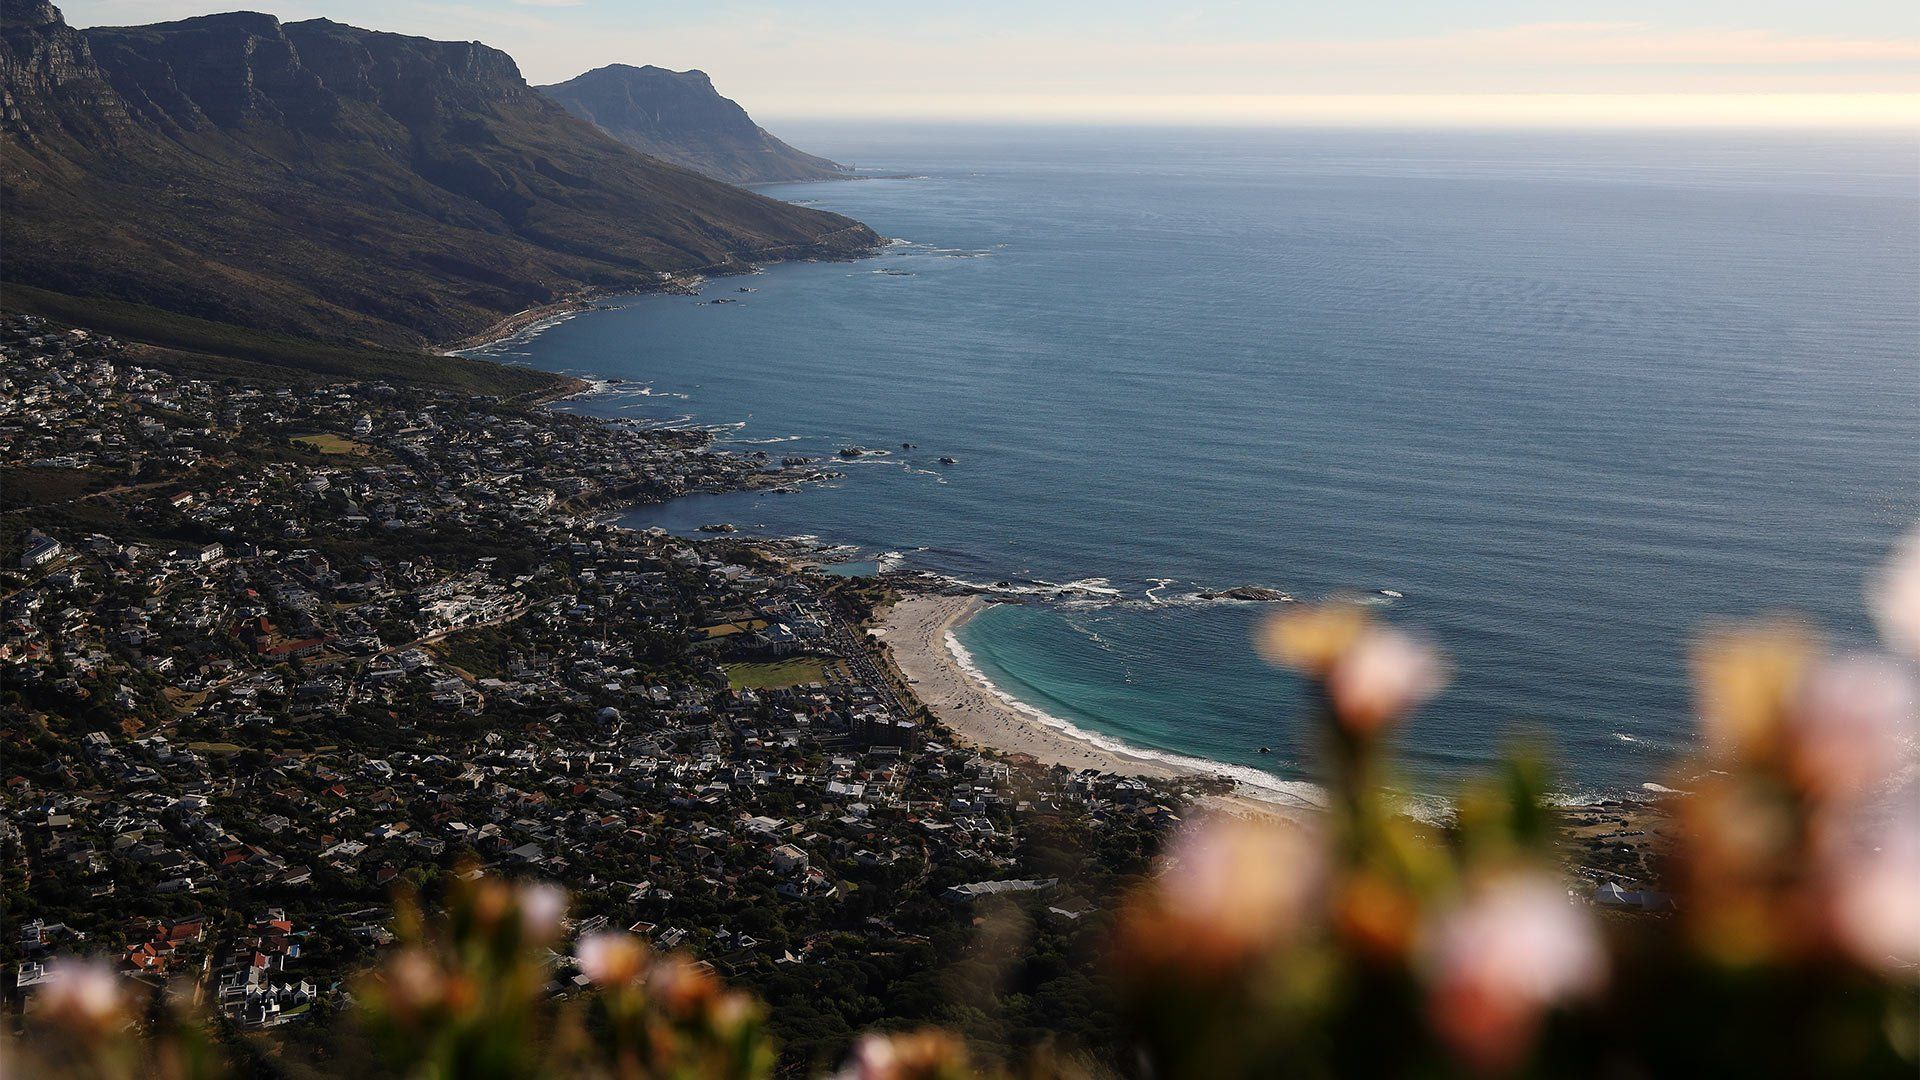 A coastal village in South Africa viewed from a high vantage point, with hills in the distance and the sea stretching to the horizon.